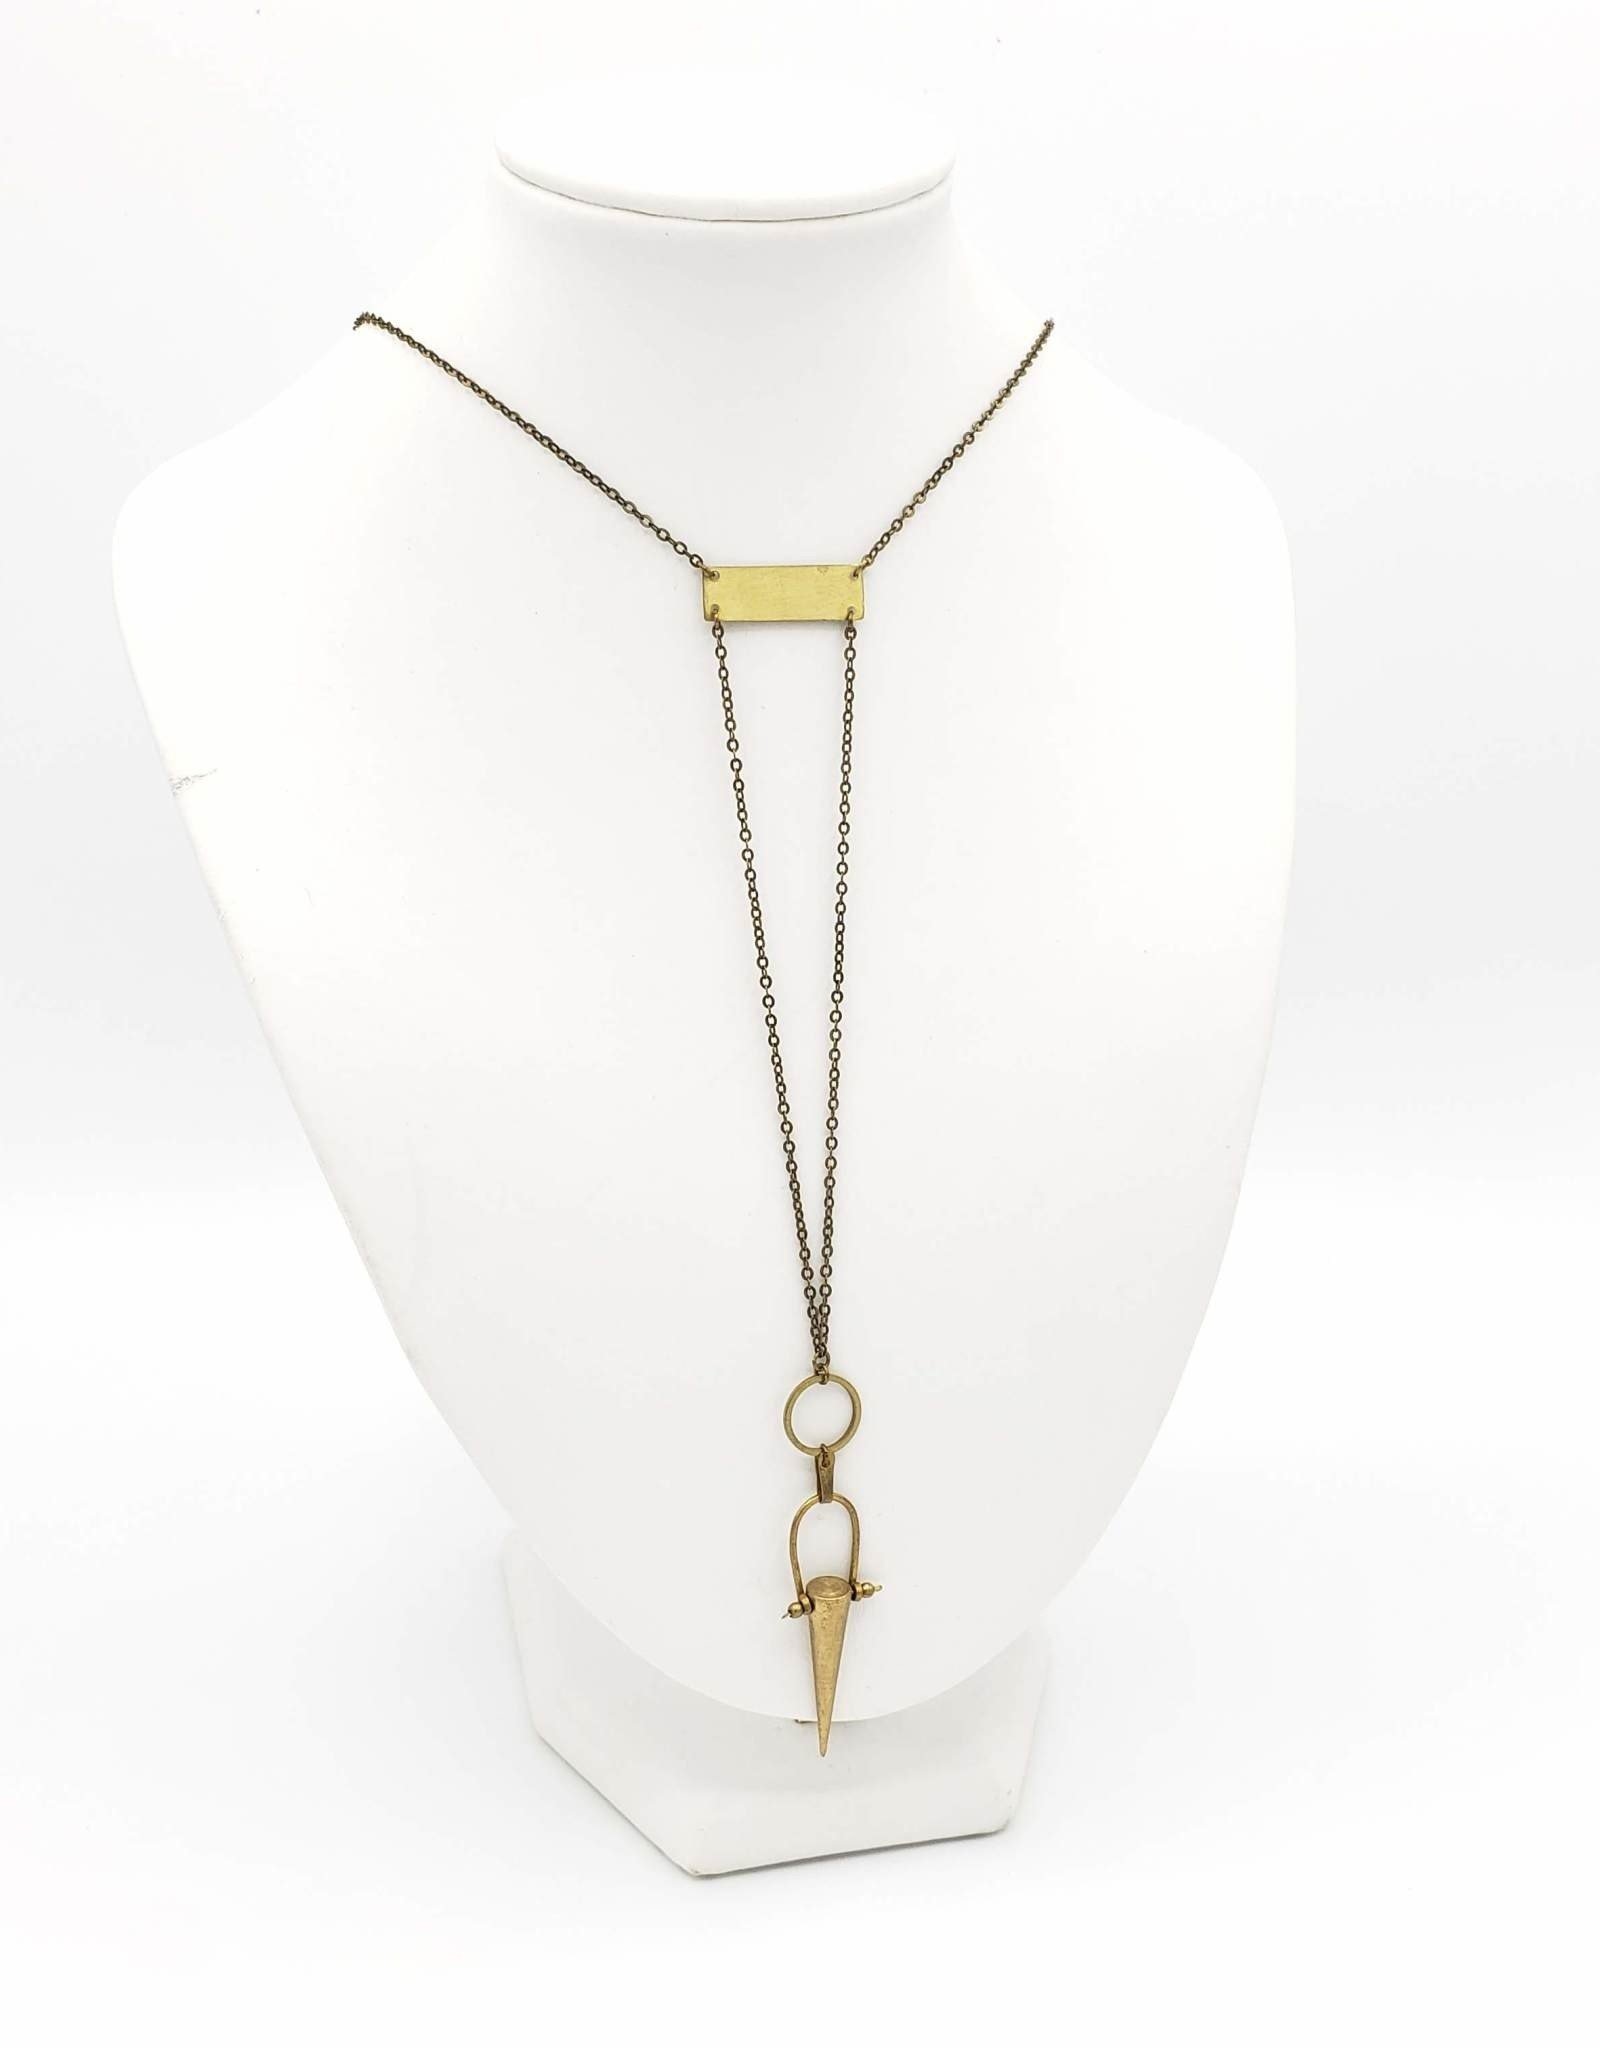 Jenevier Blaine Brass Spike, Hoops and Links Necklace